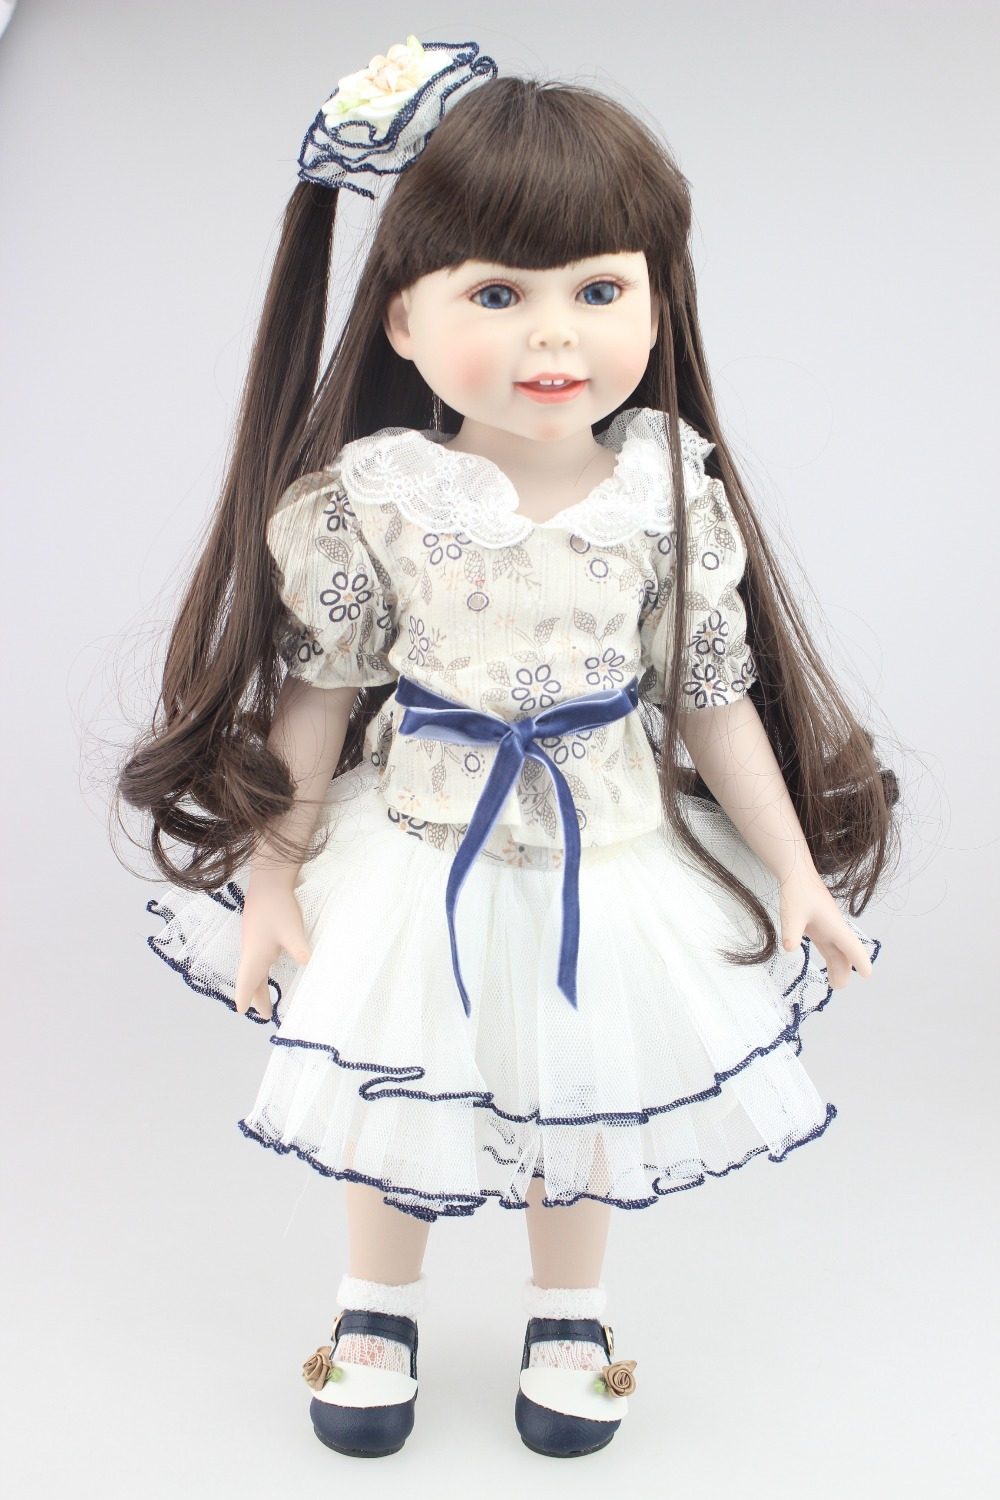 2016 SD DOLL New design most popular 18inches fashion angel play doll education toy for girls birthday Gift(China (Mainland))